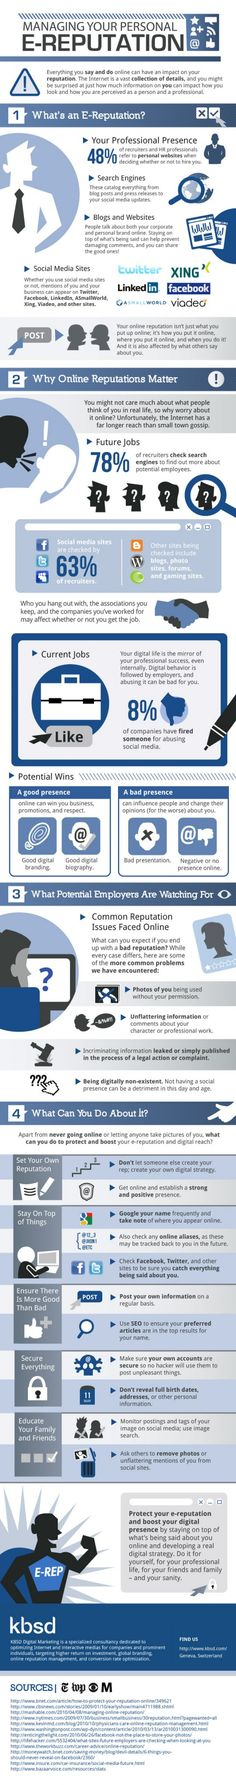 """You don't have to be running for president to care about your online reputation. Almost everything you do online is easy to track, especially when you're using social media sites. This infographic shows you how to manage your """"e-reputation,""""Internet"""